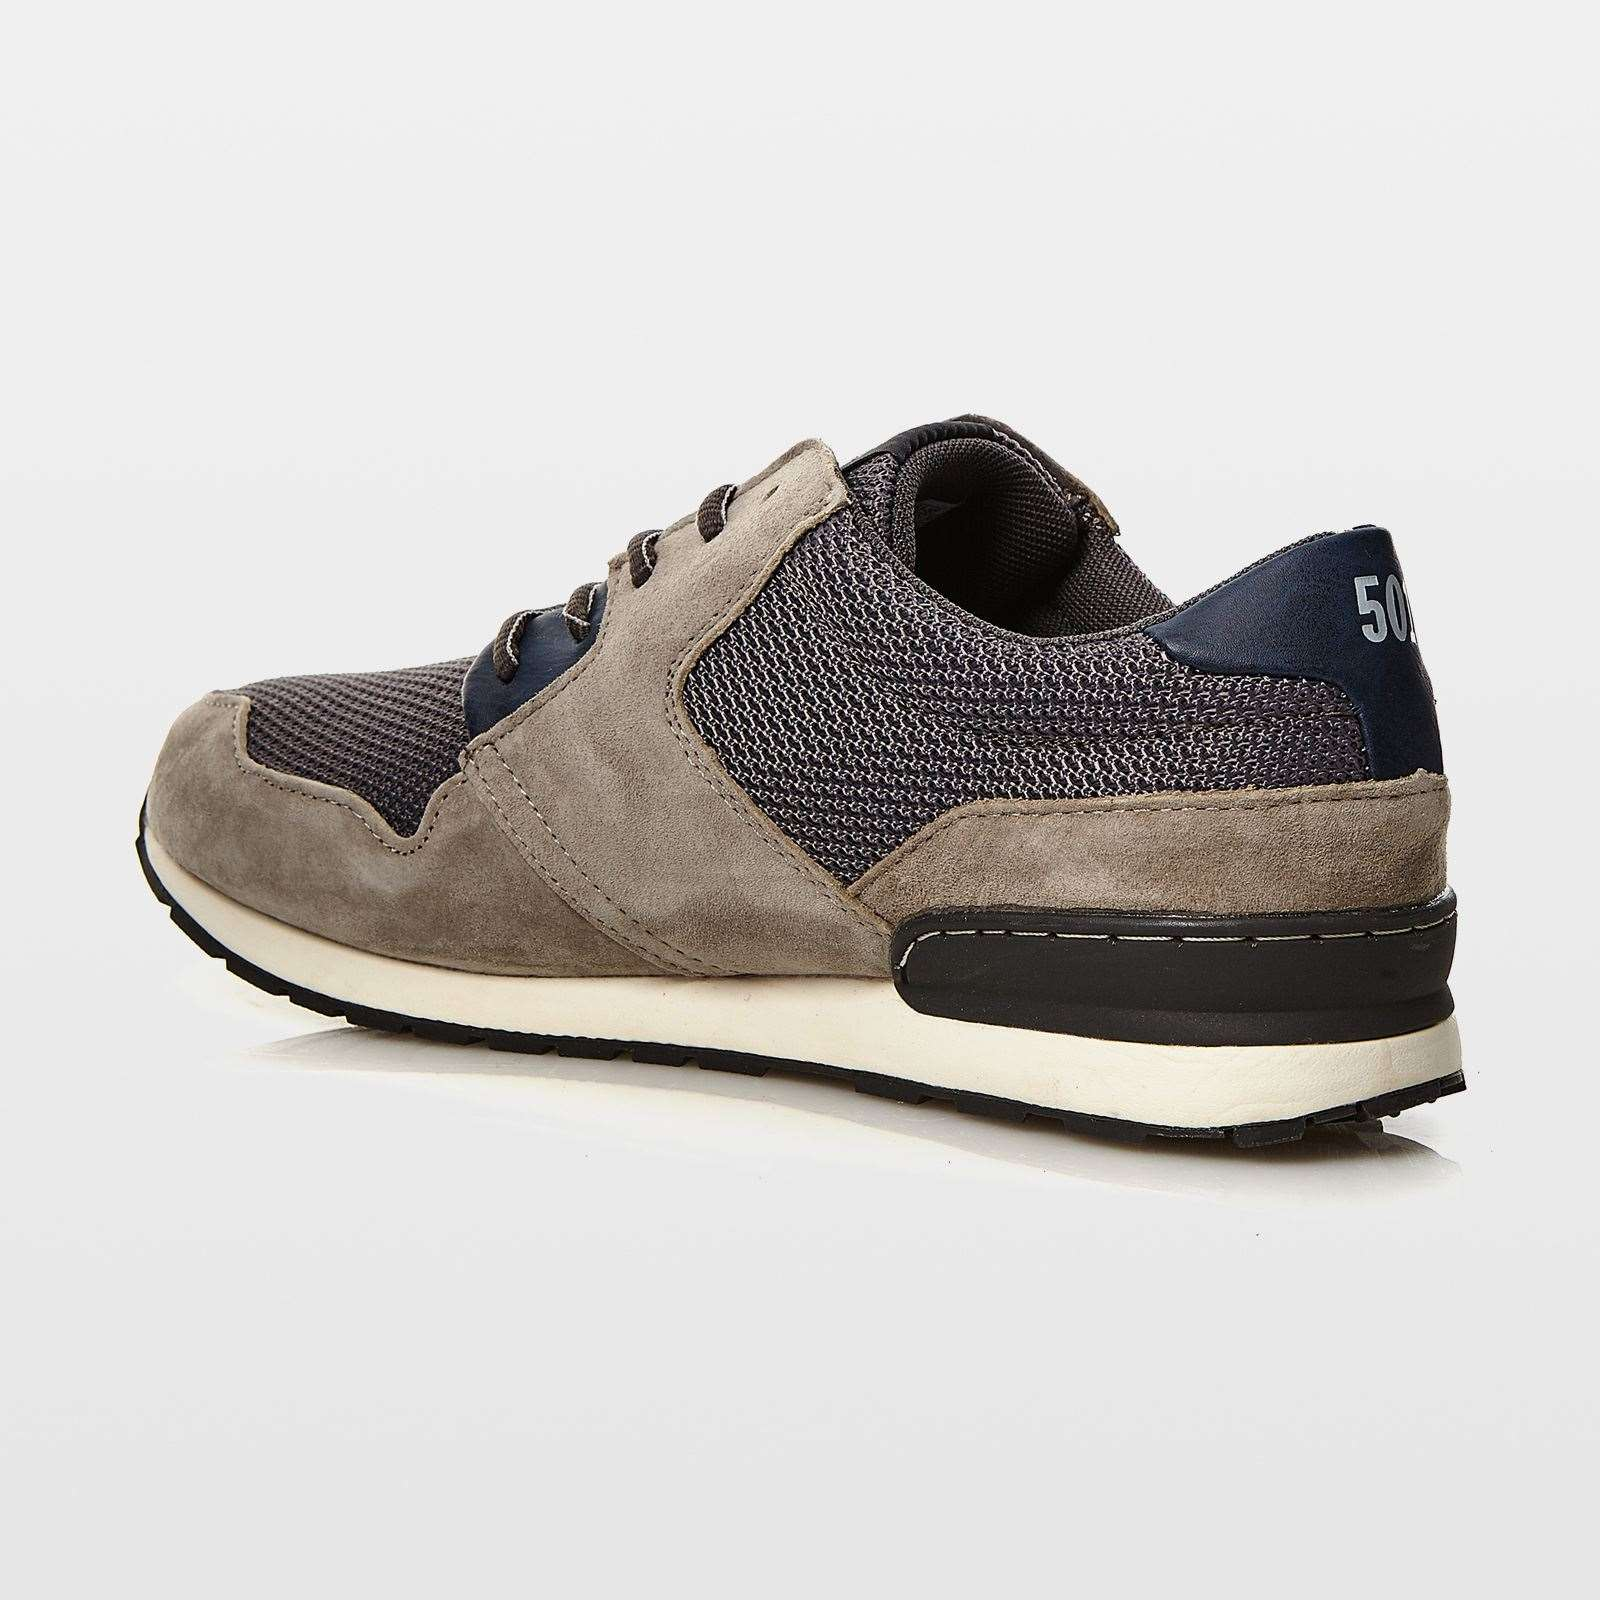 Levi's NY Runner II - Baskets empiècements en cuir - gris  Baskets